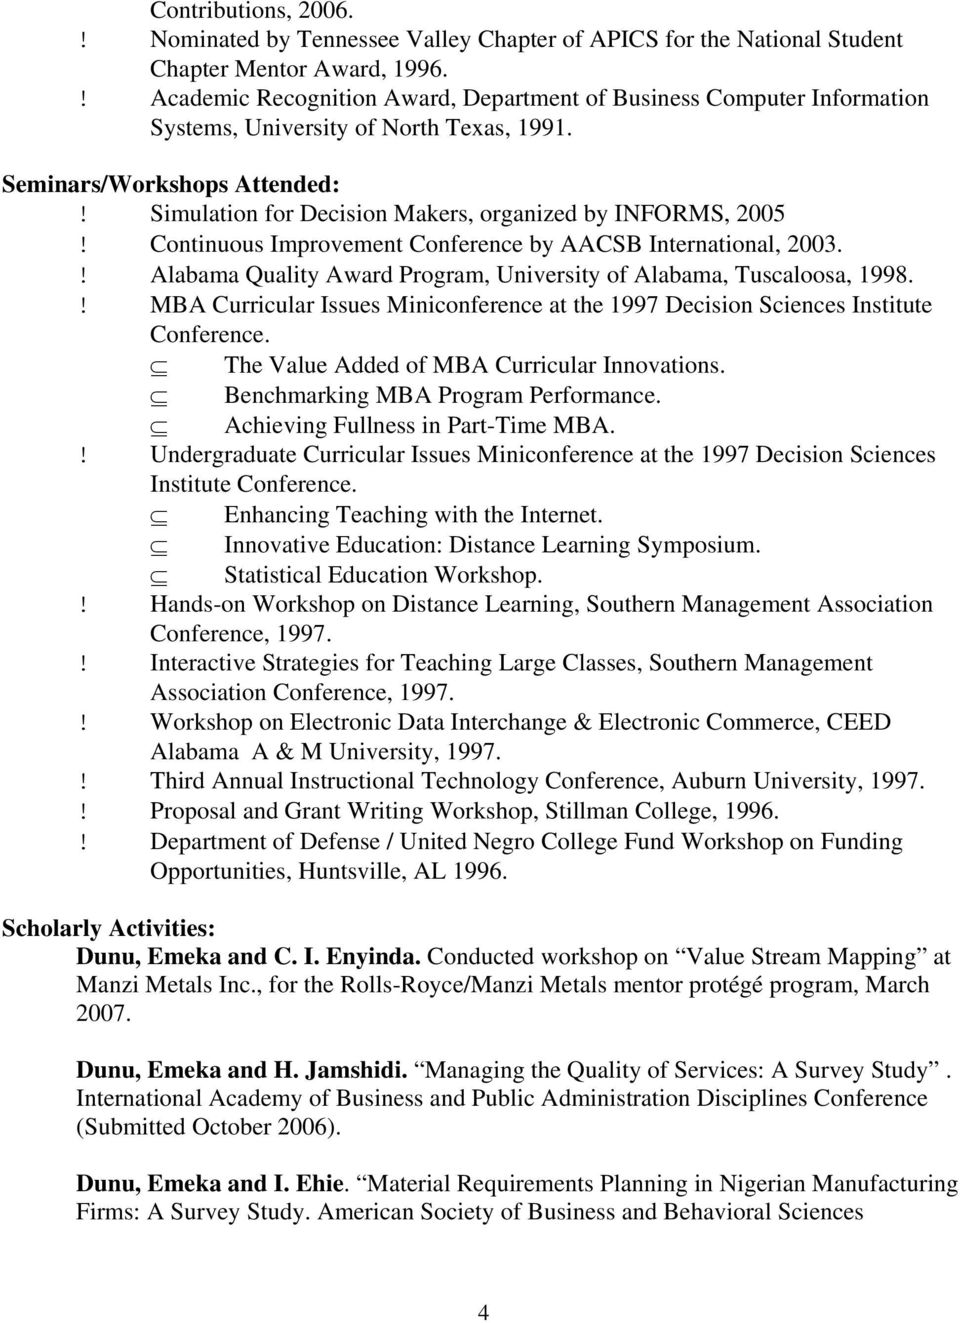 Simulation for Decision Makers, organized by INFORMS, 2005! Continuous Improvement Conference by AACSB International, 2003.! Alabama Quality Award Program, University of Alabama, Tuscaloosa, 1998.